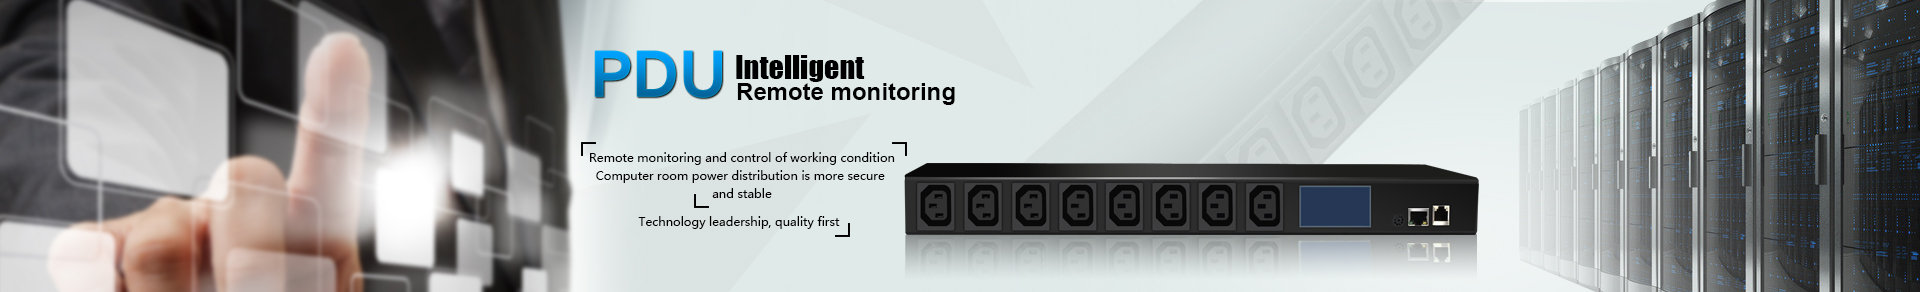 Intelligent Remote Monitoring PDU